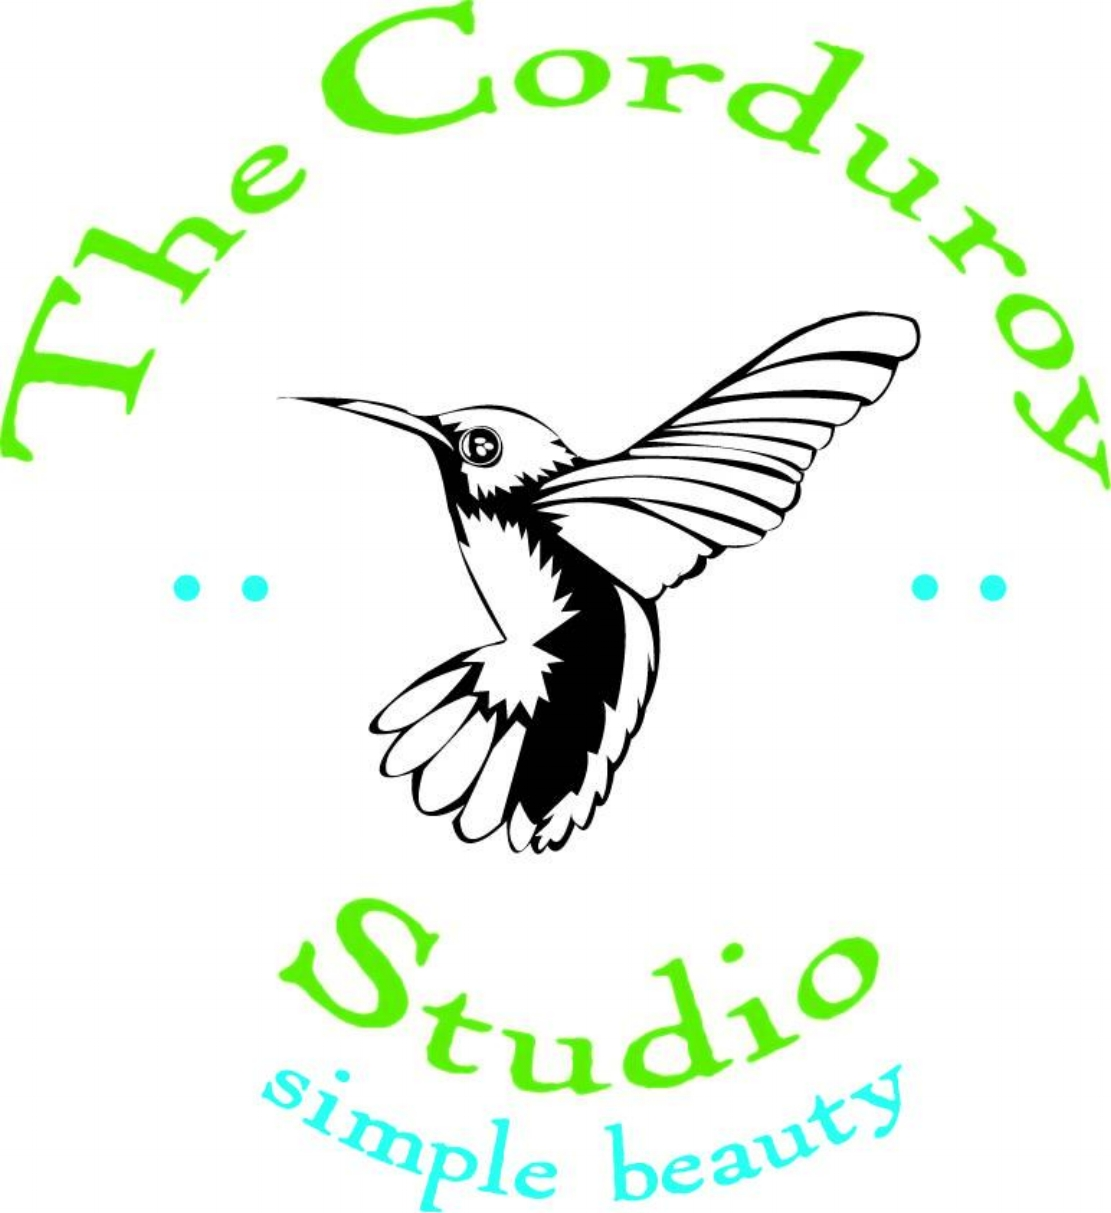 The Corduroy Studio